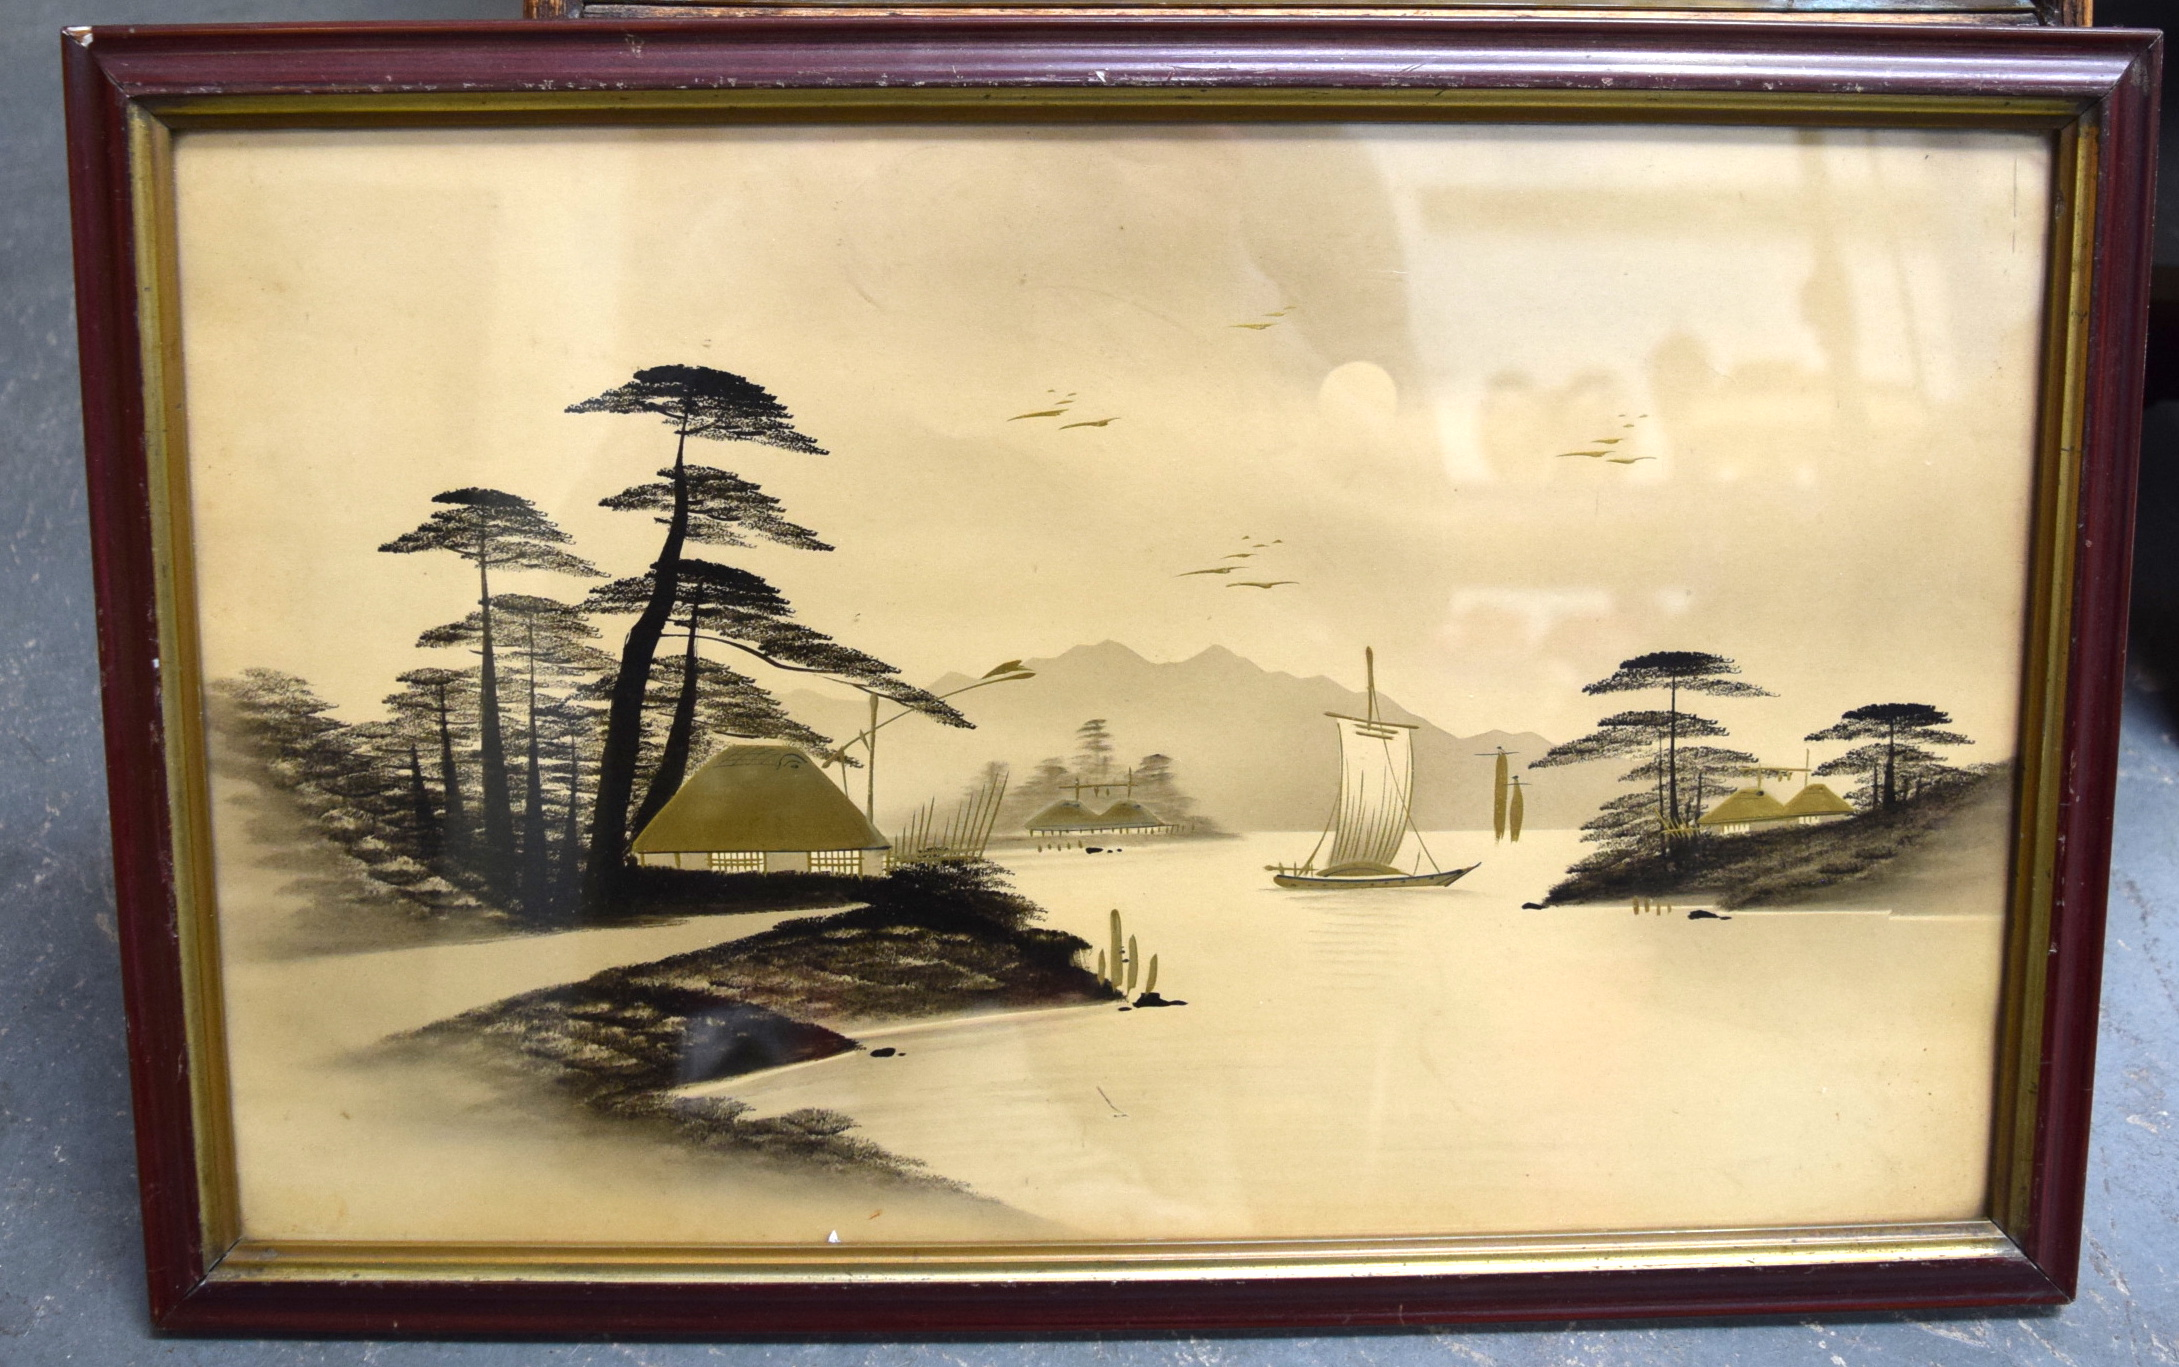 Lot 2786 - CHINESE SCHOOL (20th century) FRAMED LACQUERED PICTURE, depicting boats in a river scene. 28.5 cm x